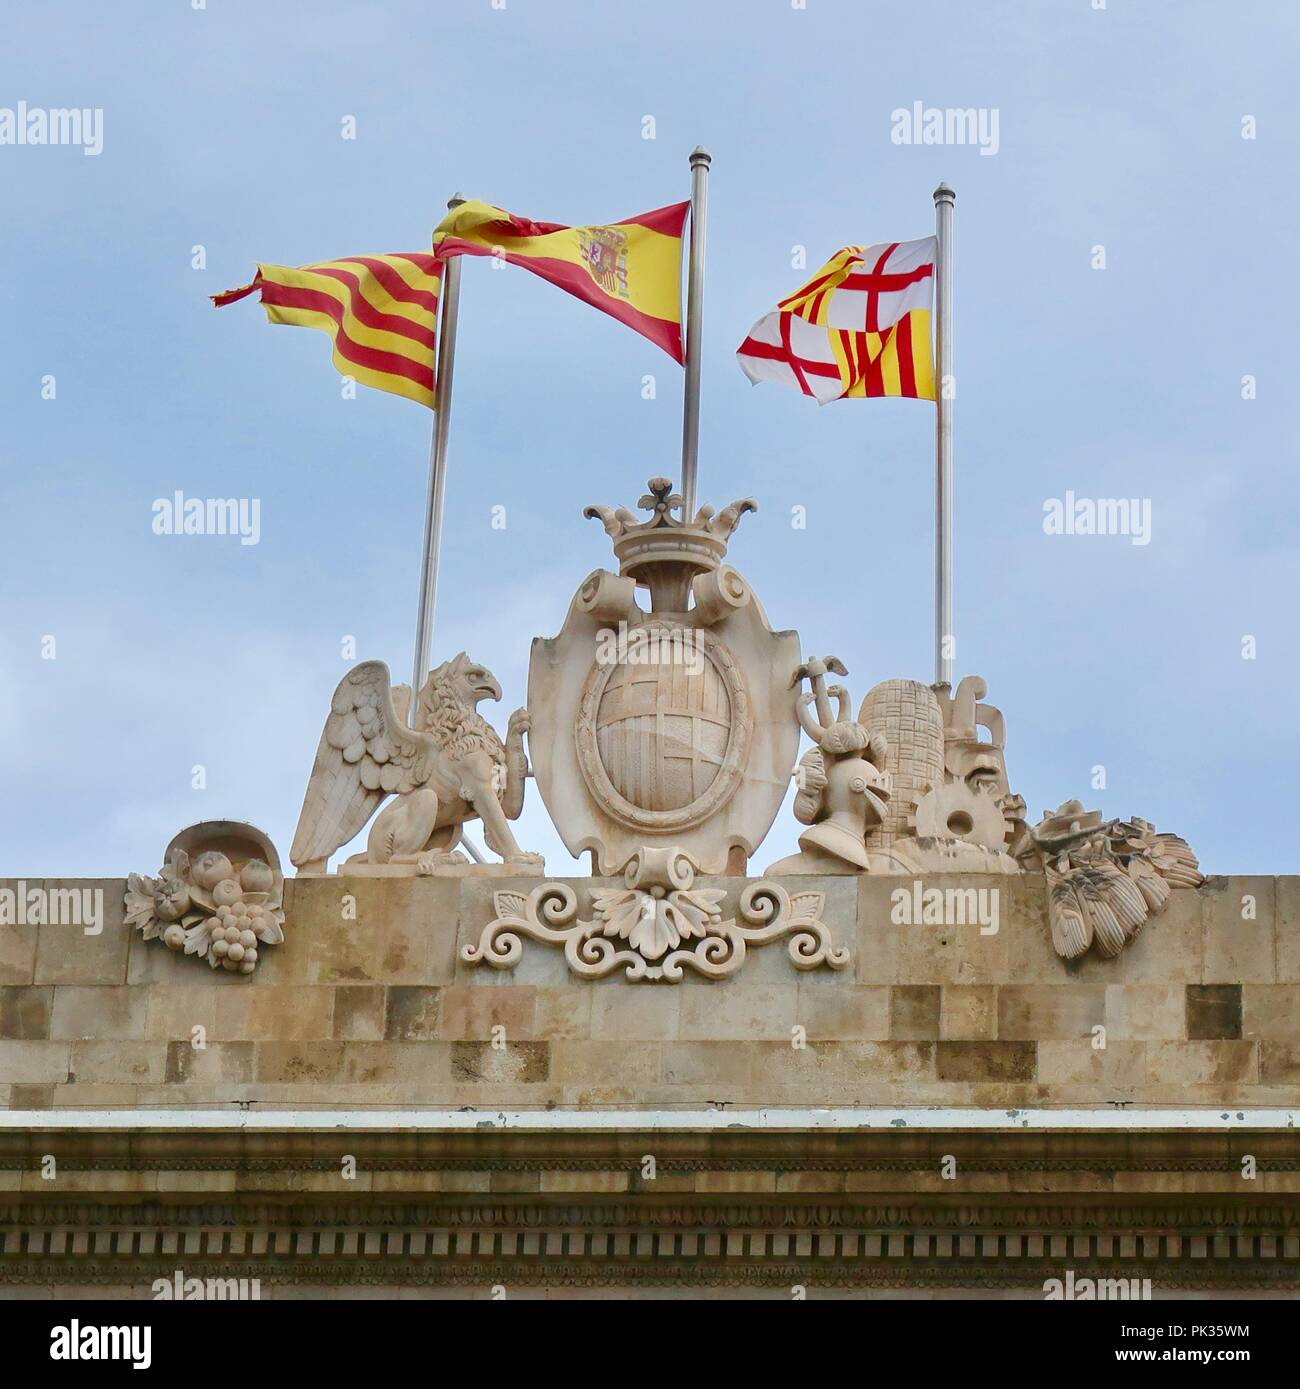 Flags flying for Barcelona, Catalonia and Spain. City Hall, Place de Sant Joame, Barcelona. Hot summer afternoon August 2018. - Stock Image